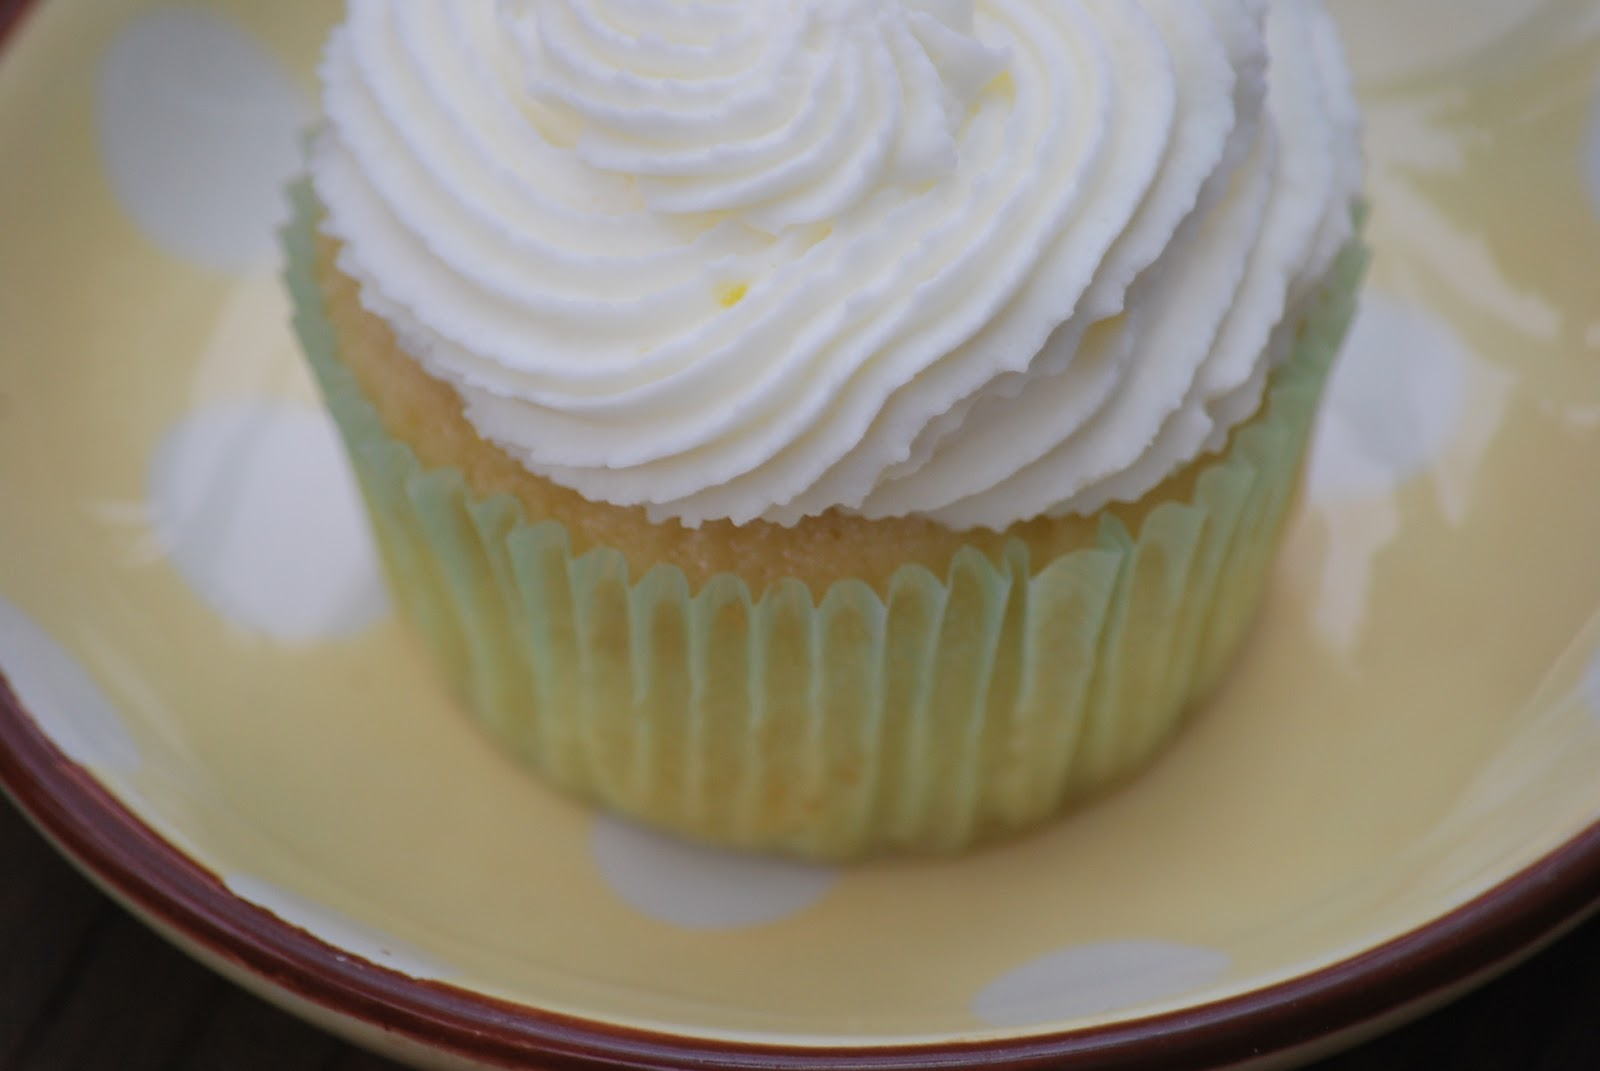 My story in recipes: Lemon Cupcakes with Lemon Whipped Cream